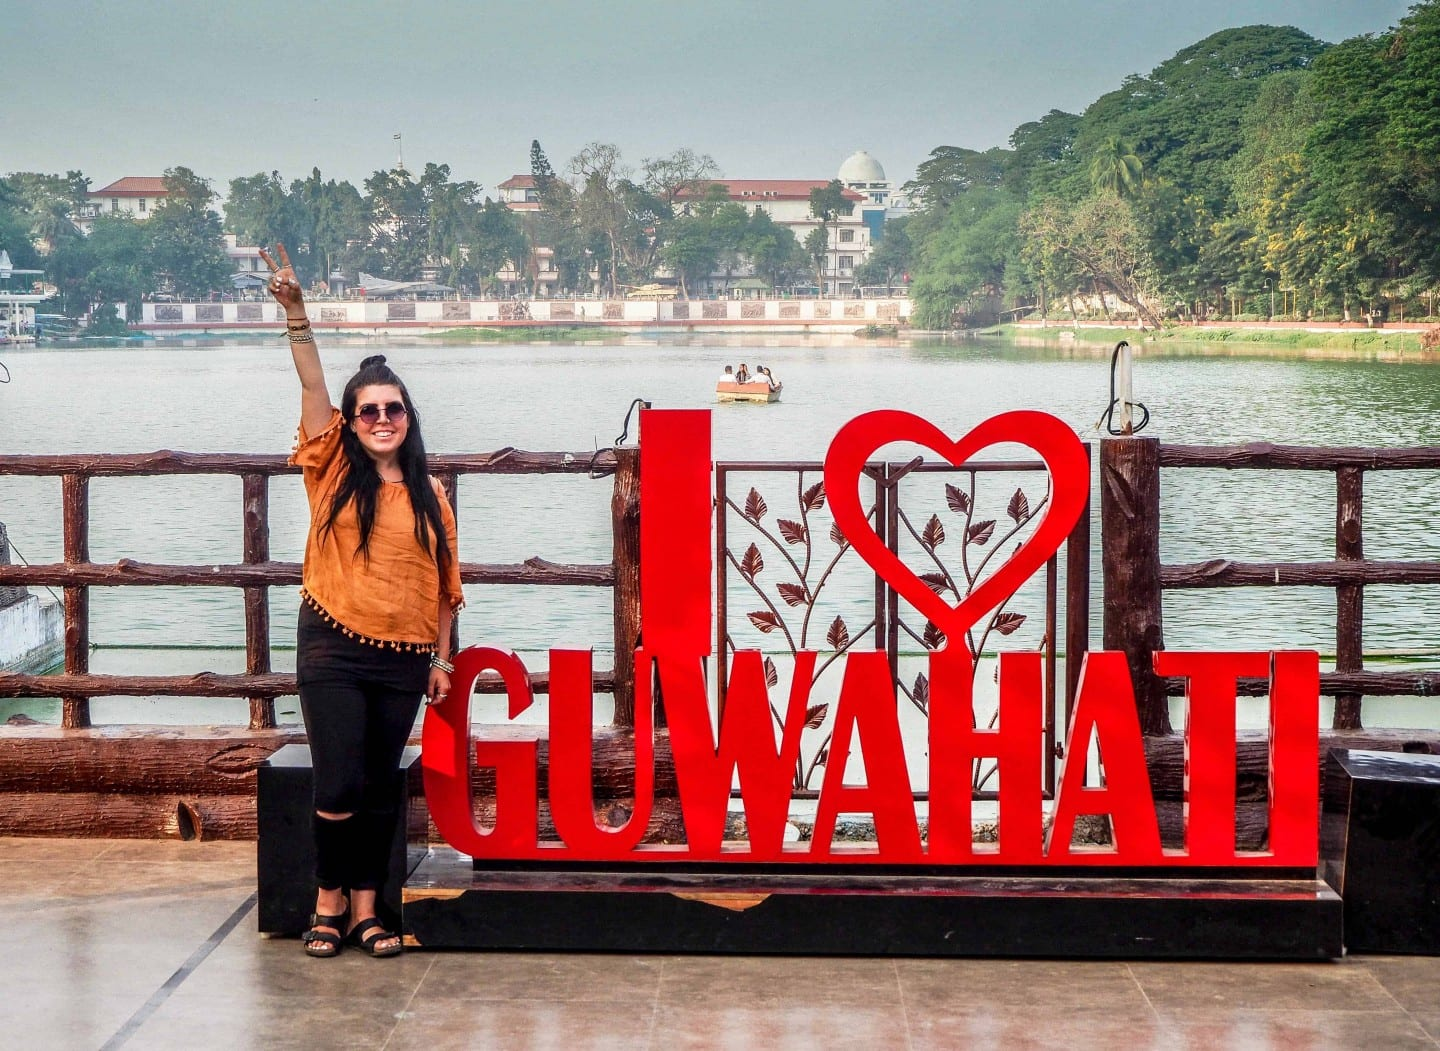 A BEGINNER'S TRAVEL GUIDE TO GUWAHATI - ESSENTIAL TIPS FOR THE